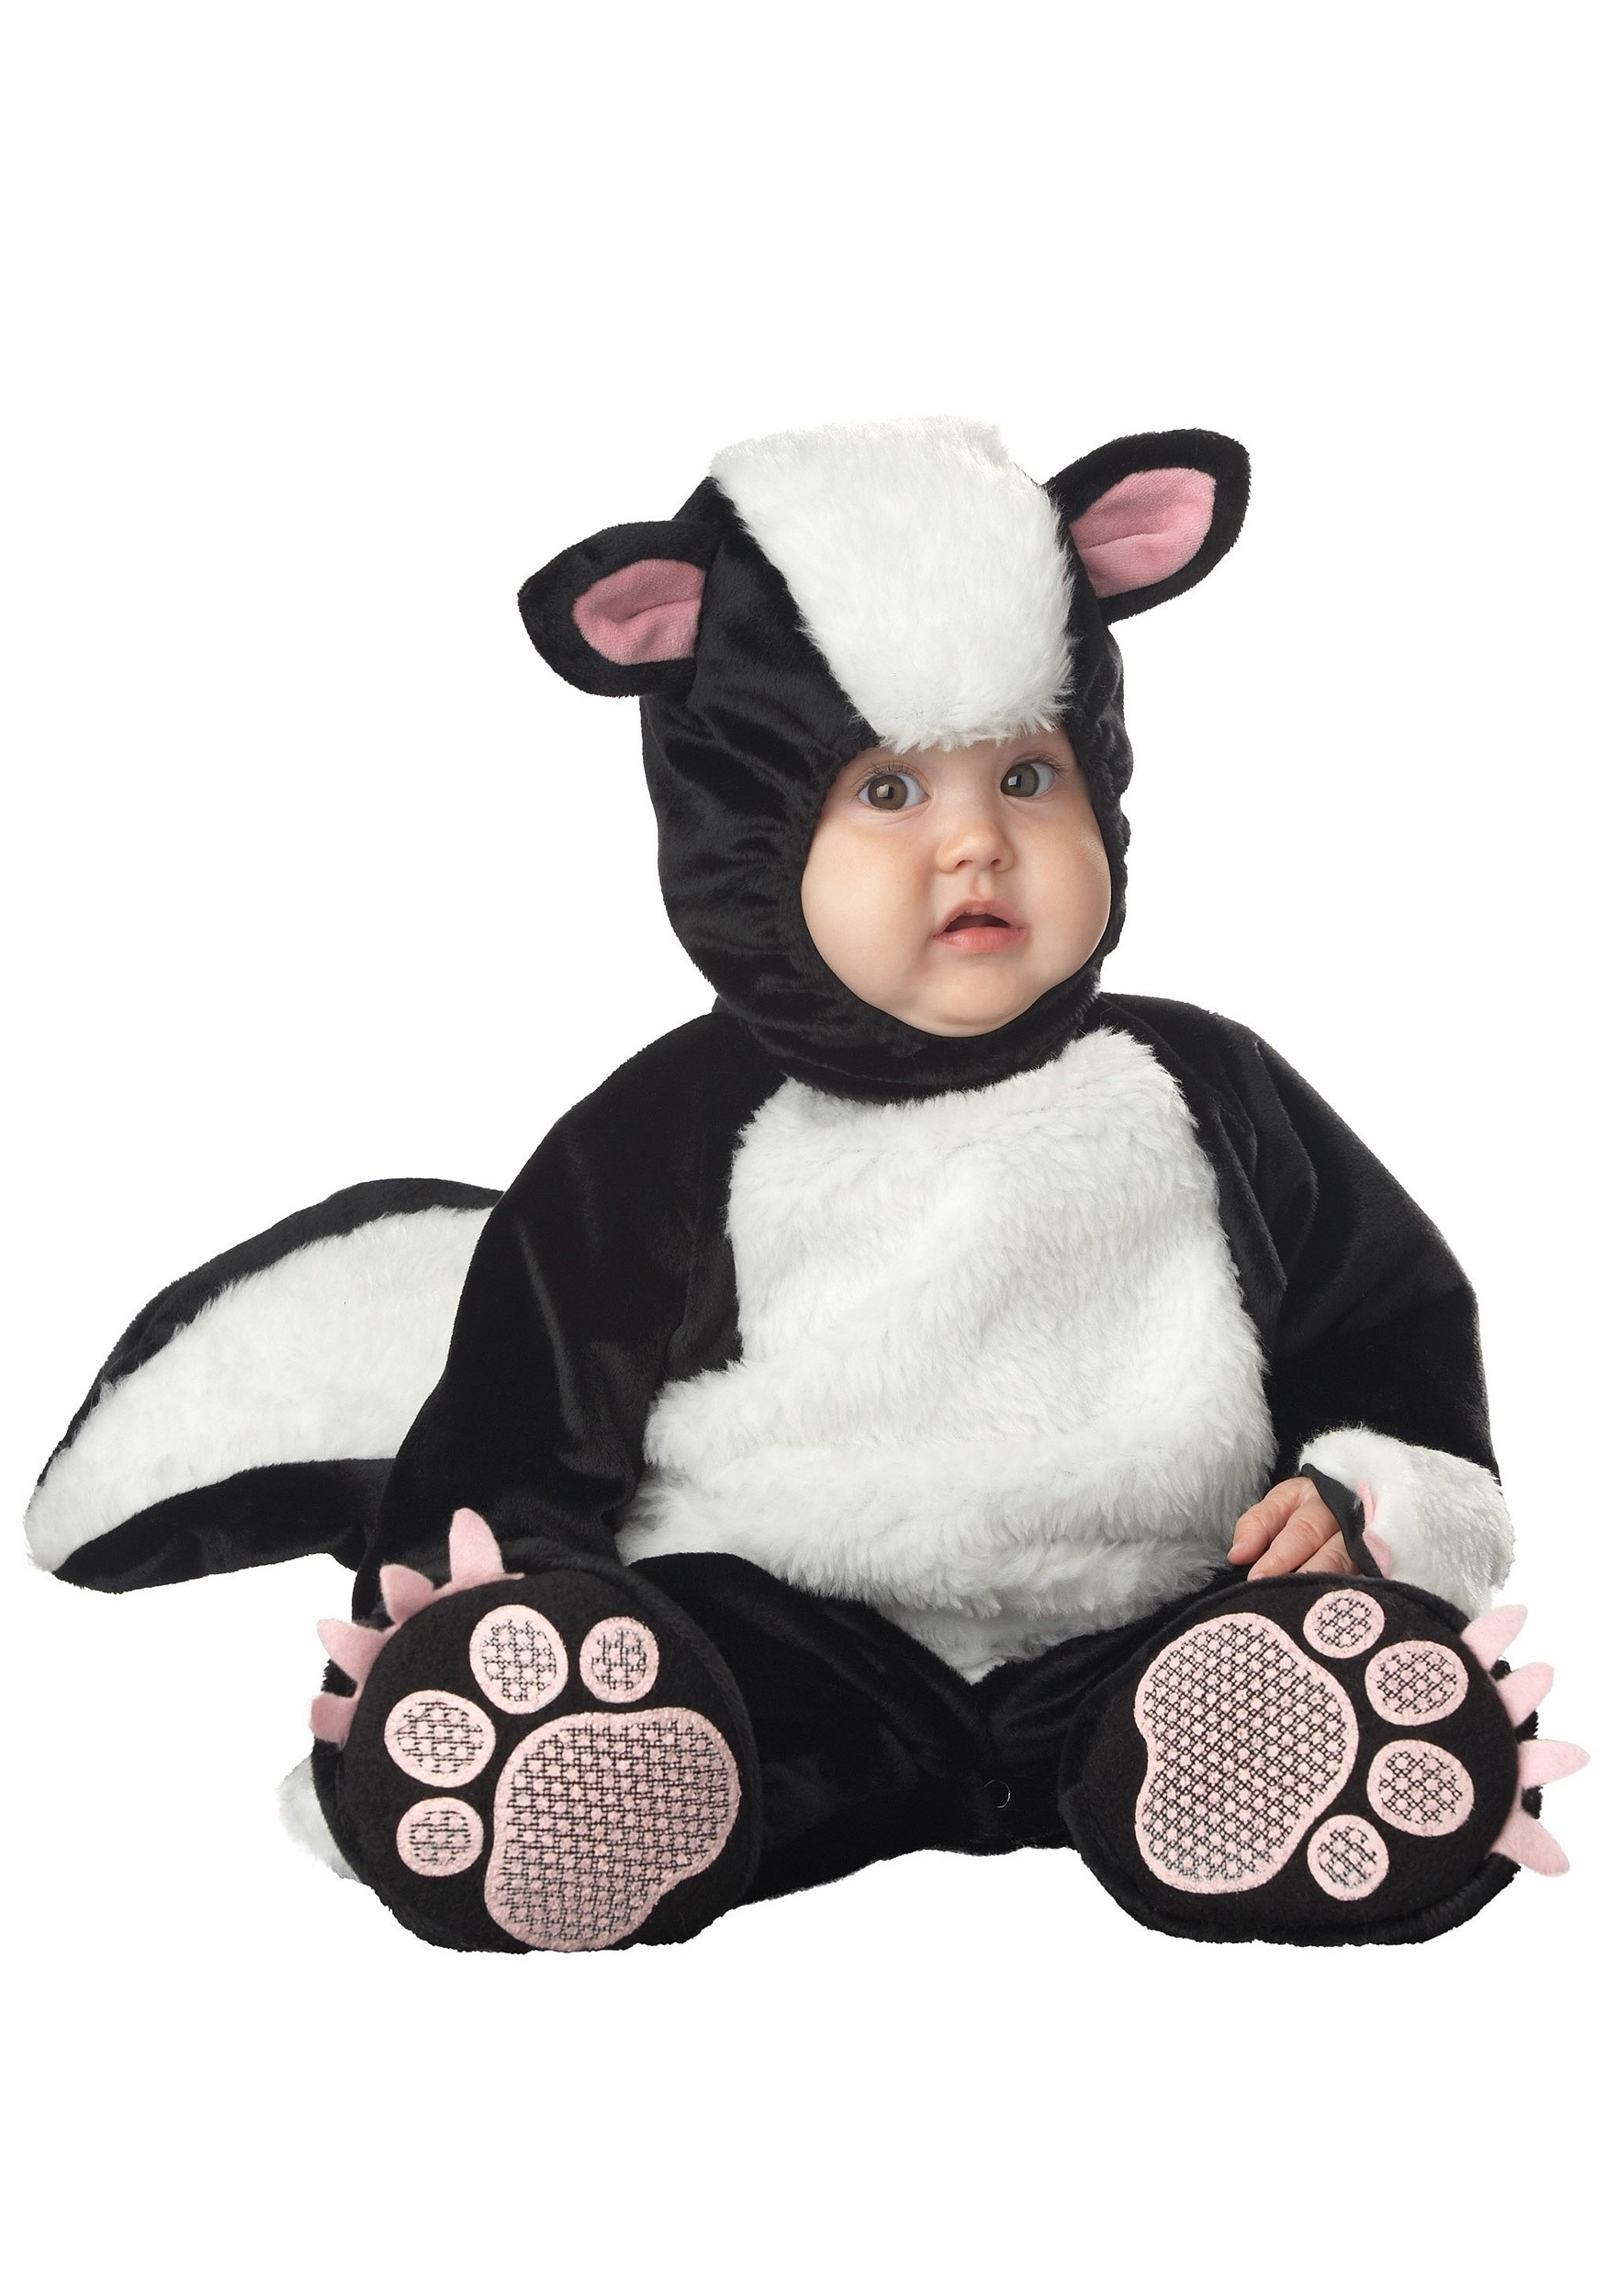 Baby Skunkster Costume  sc 1 st  Halloween Costume : halloween costume for babies  - Germanpascual.Com